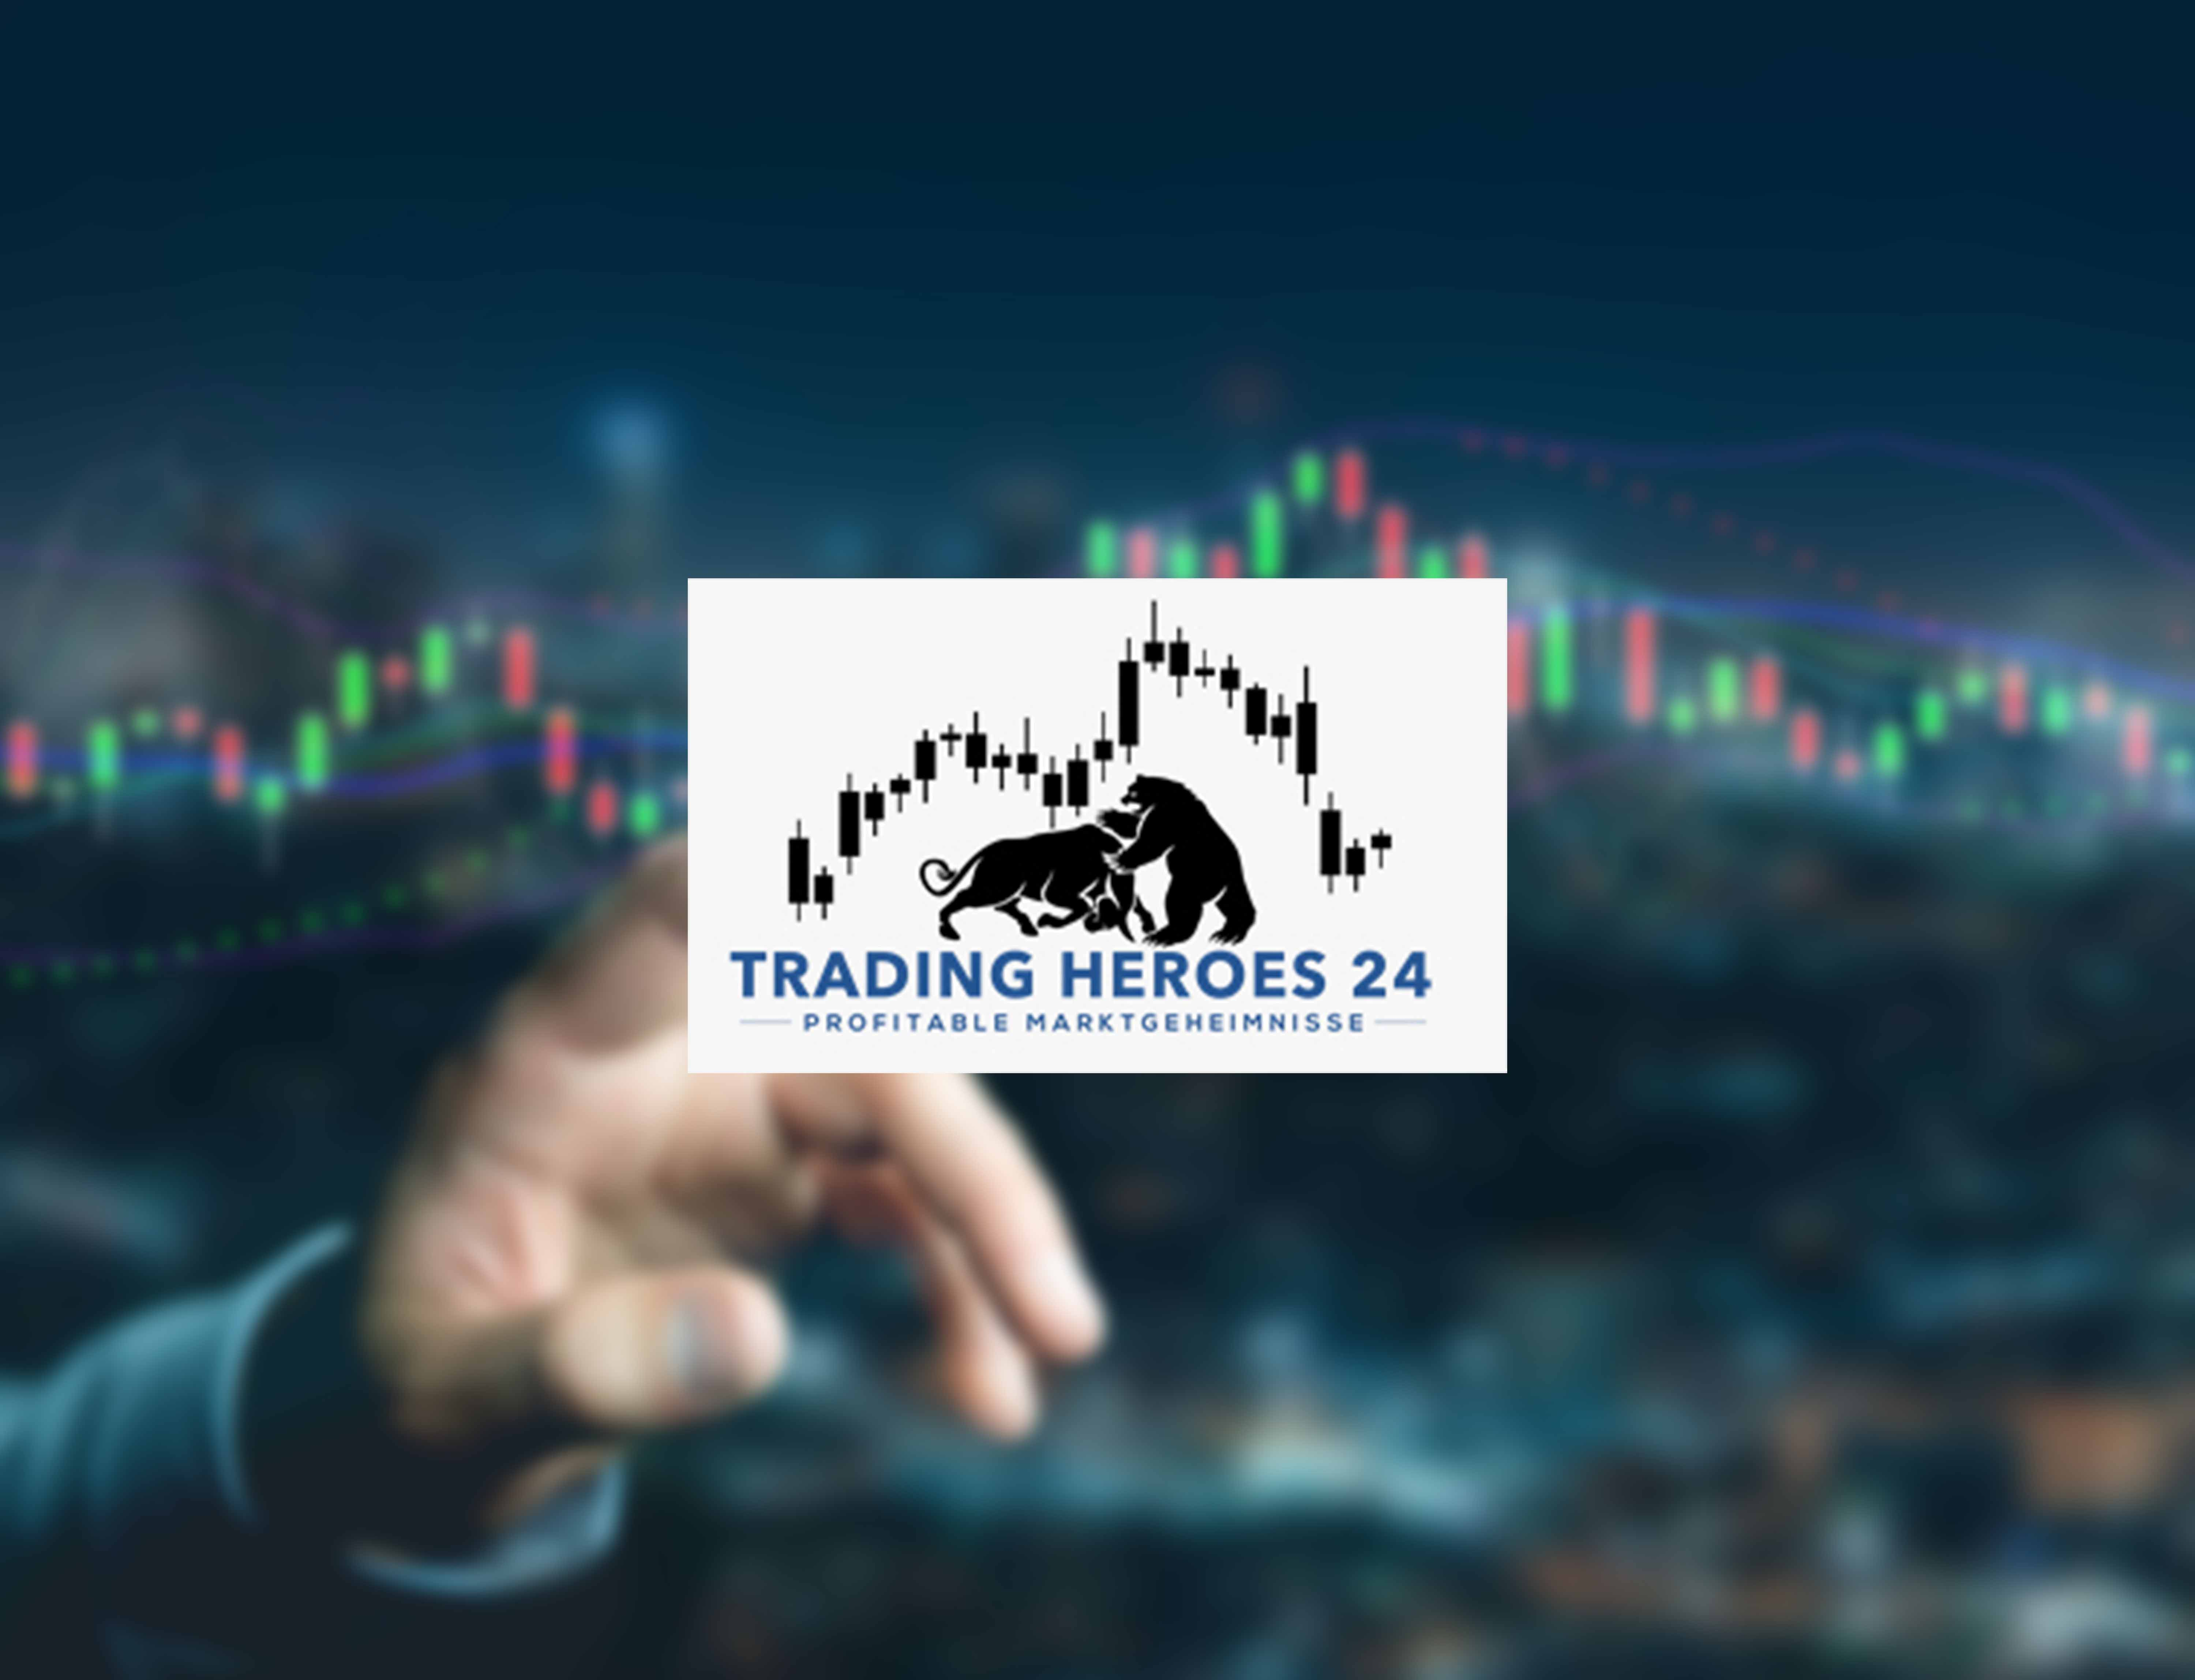 Trading Heroes 24